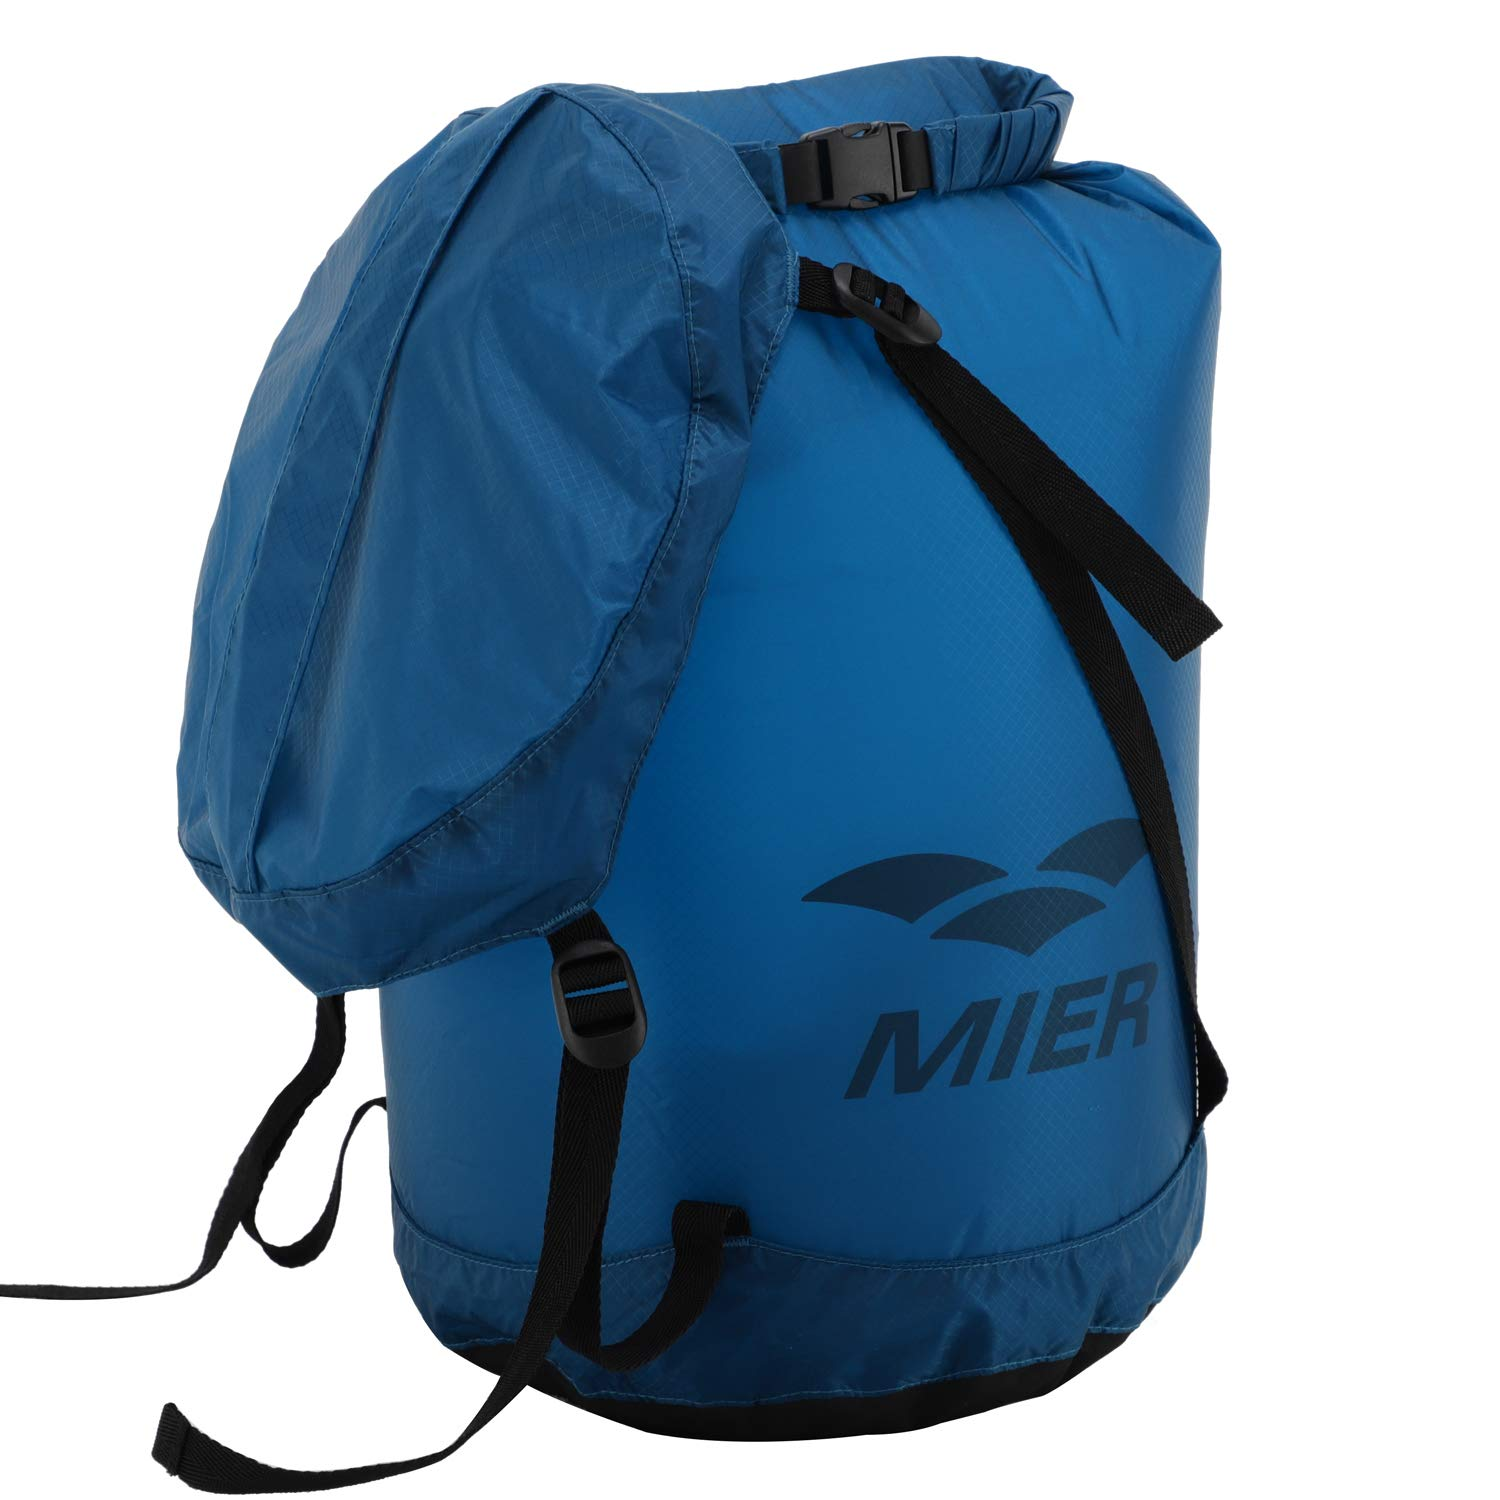 MIER Waterproof Compression Stuff Sack Ultralight Cordura Nylon Dry Bag for Backpacking, Kayaking, Camping, Outdoor Sports, 25L, Blue by MIER